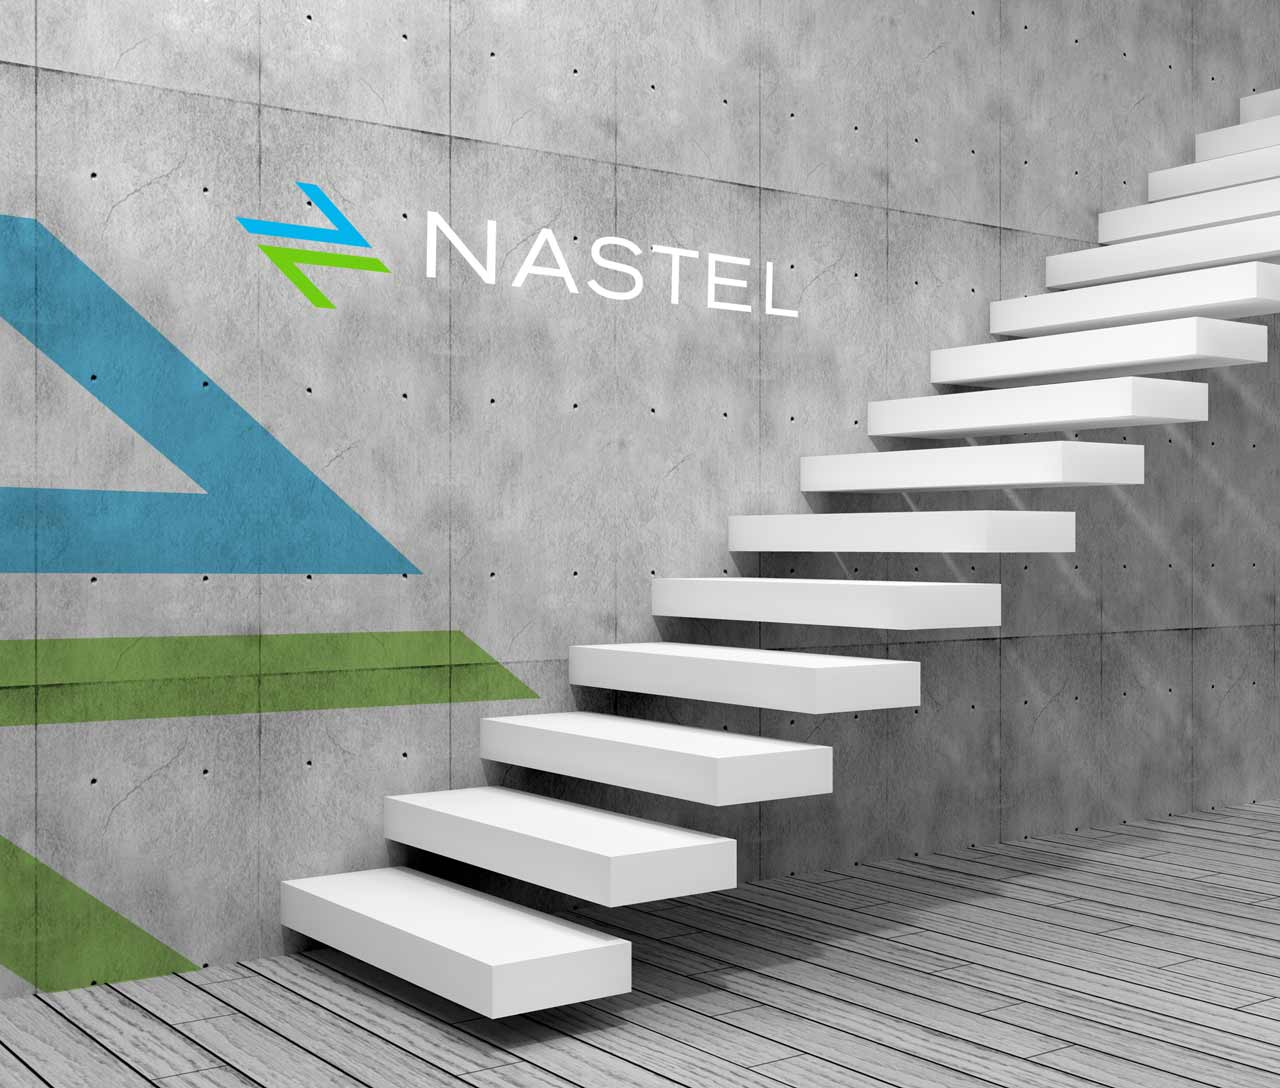 futuristic office interior with nastel logo on wall and super graphic next to floating stairs